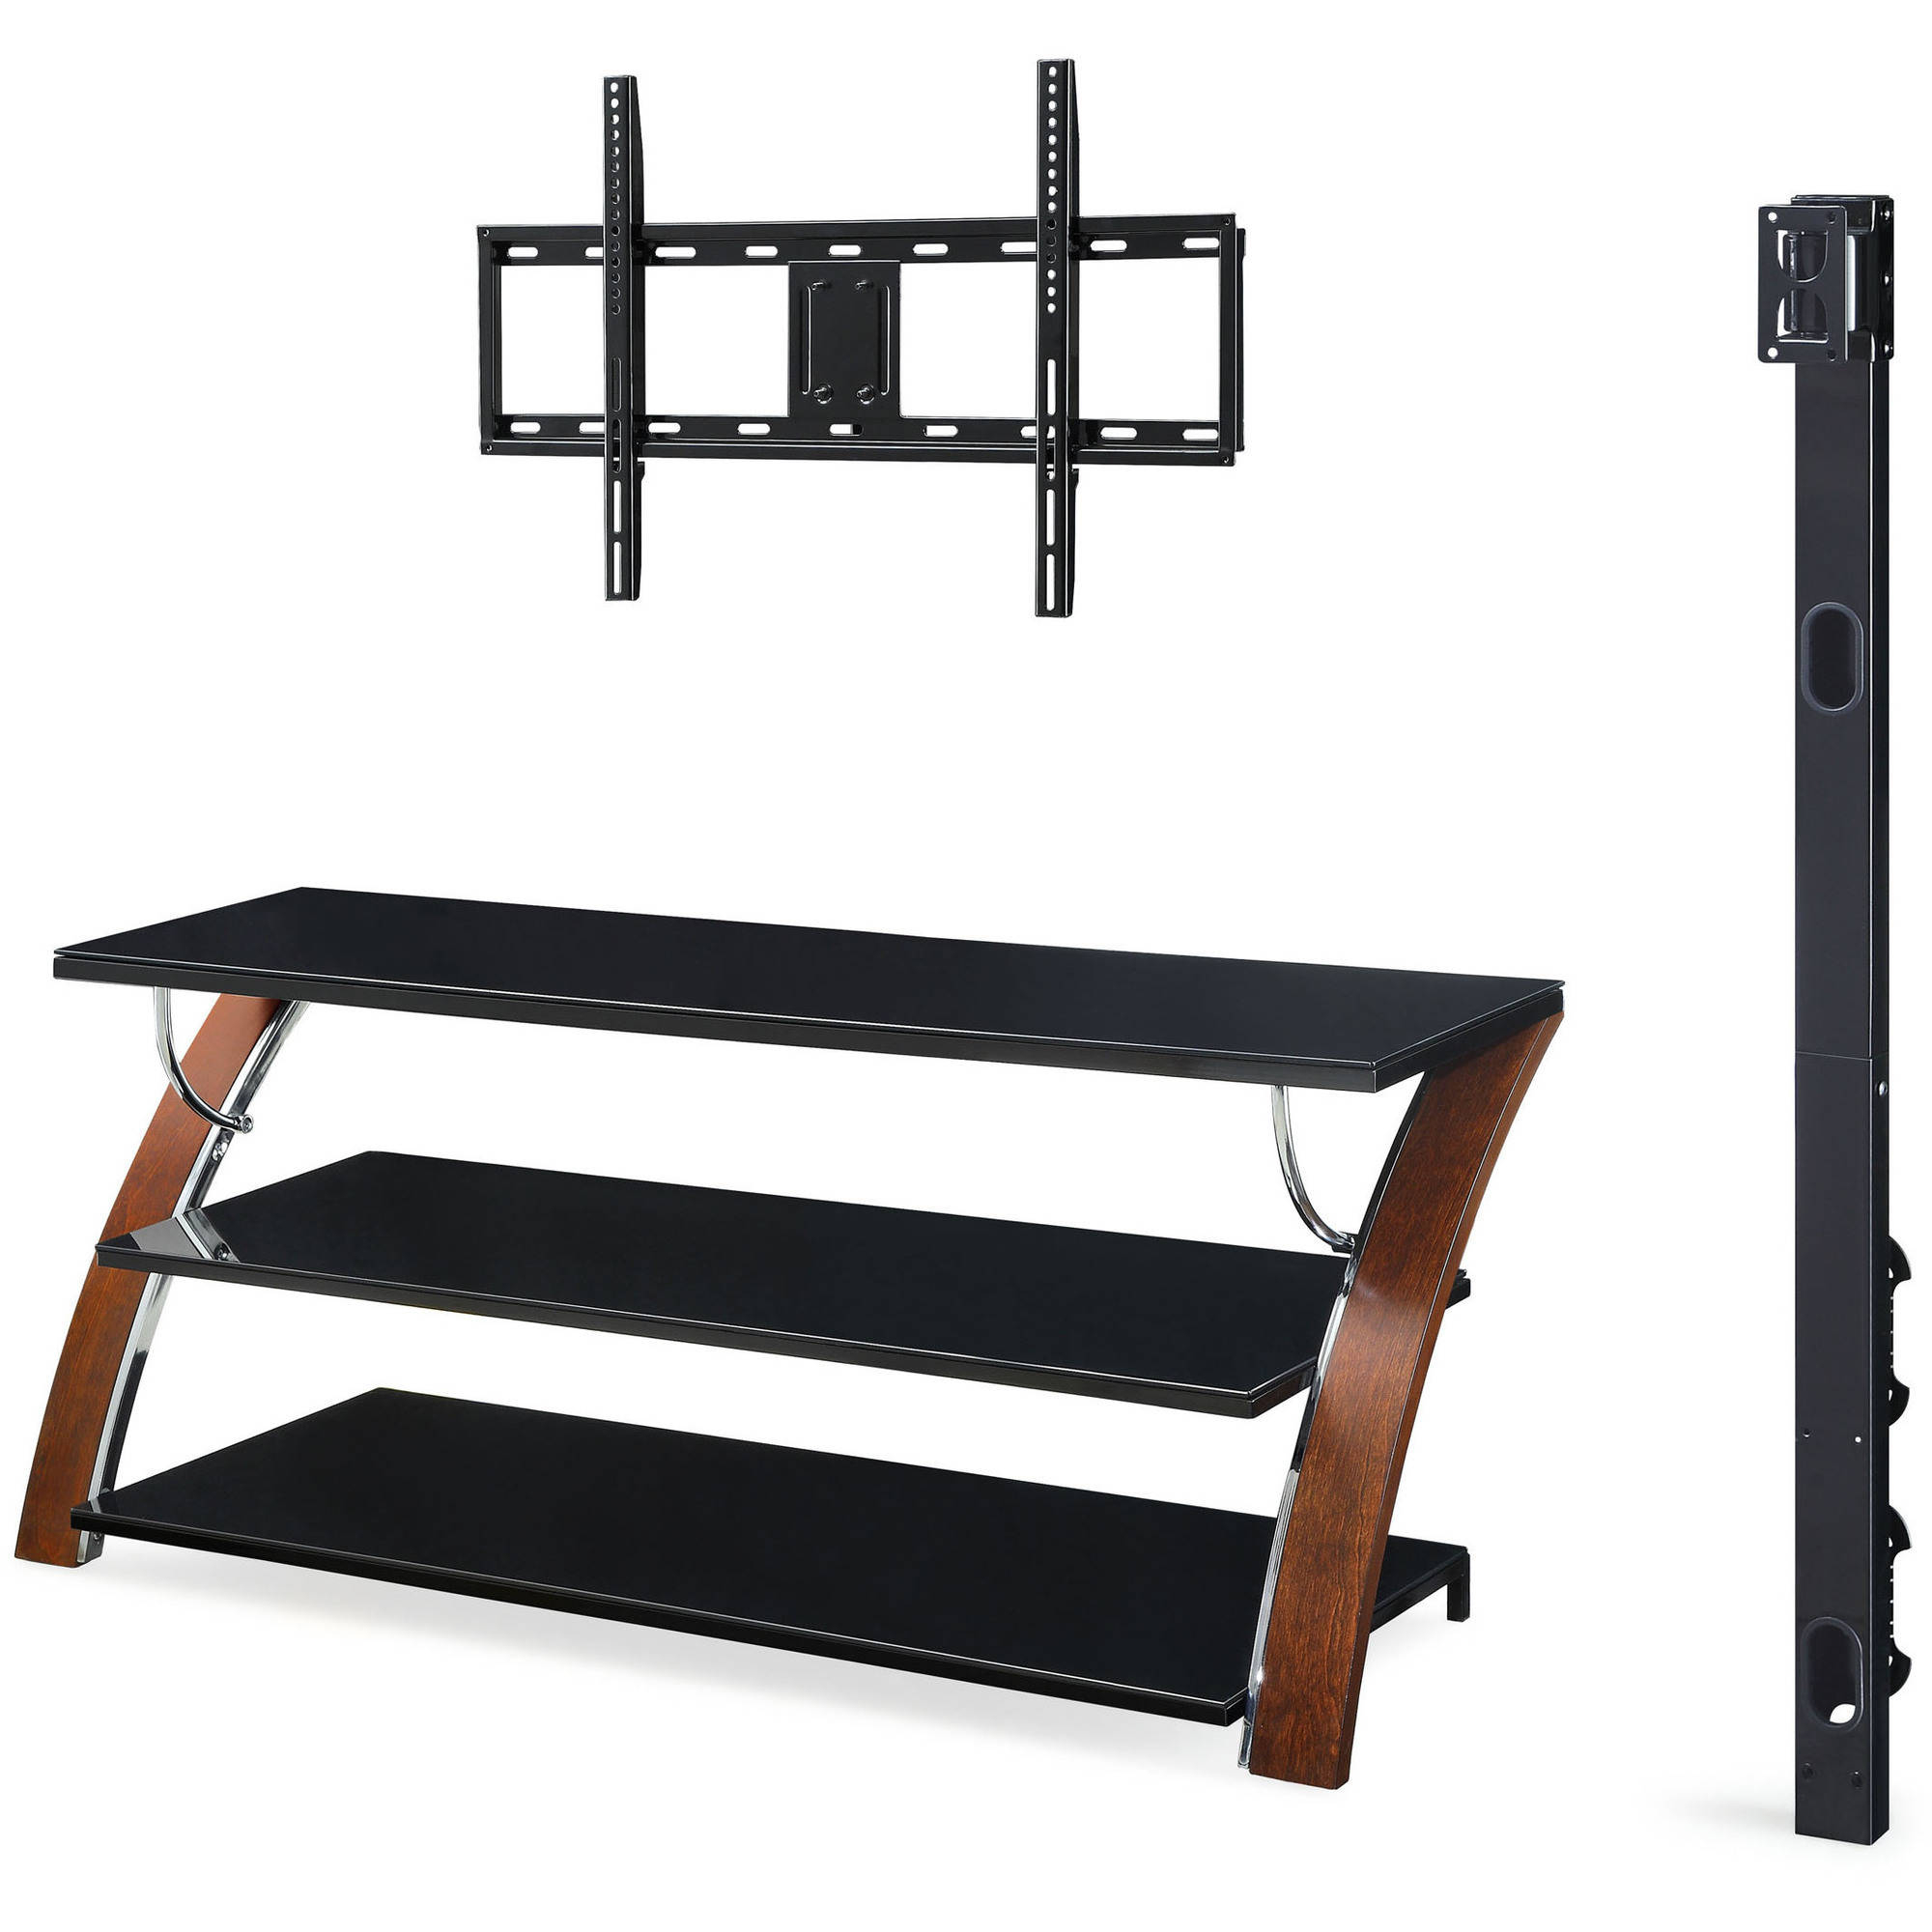 Whalen Payton Brown Cherry 3 In 1 Flat Panel Tv Stand For Tvs Up To Within Jaxon 71 Inch Tv Stands (View 17 of 30)